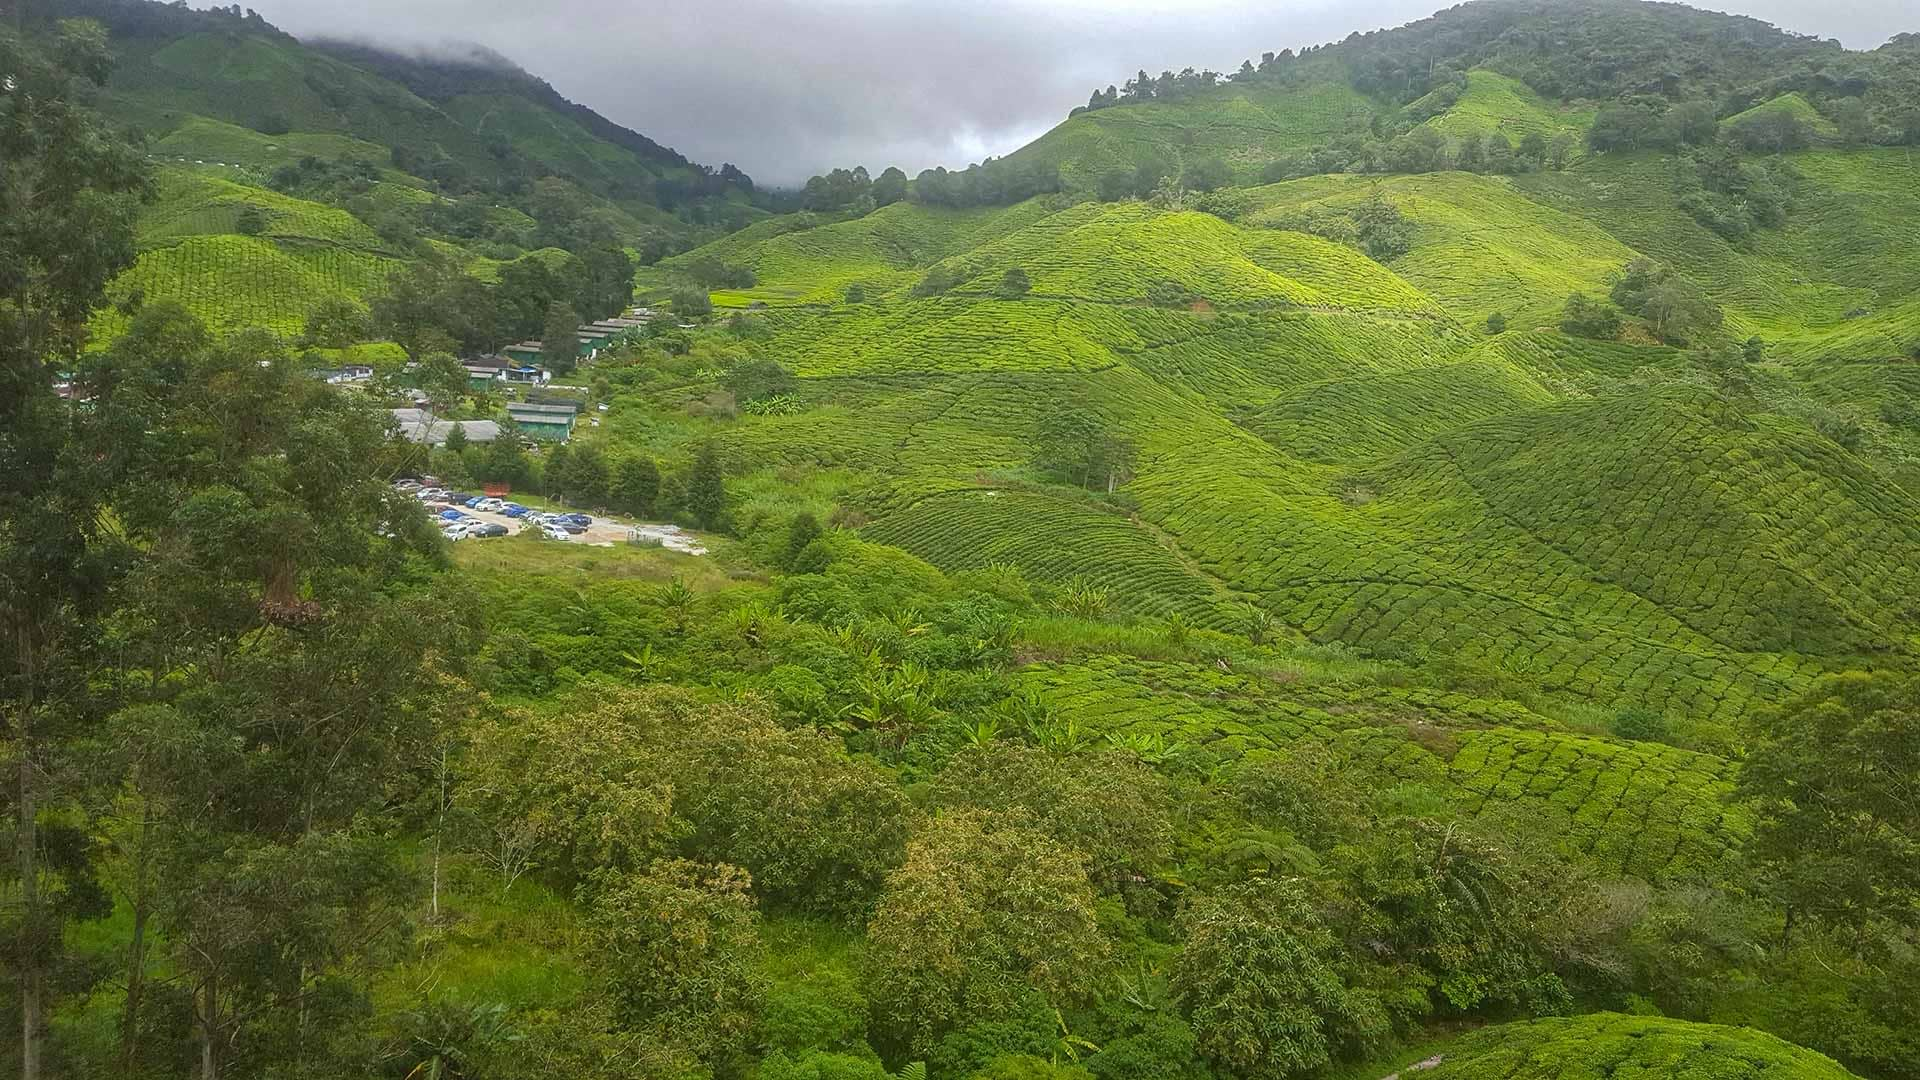 Elevated view of Tea Fields